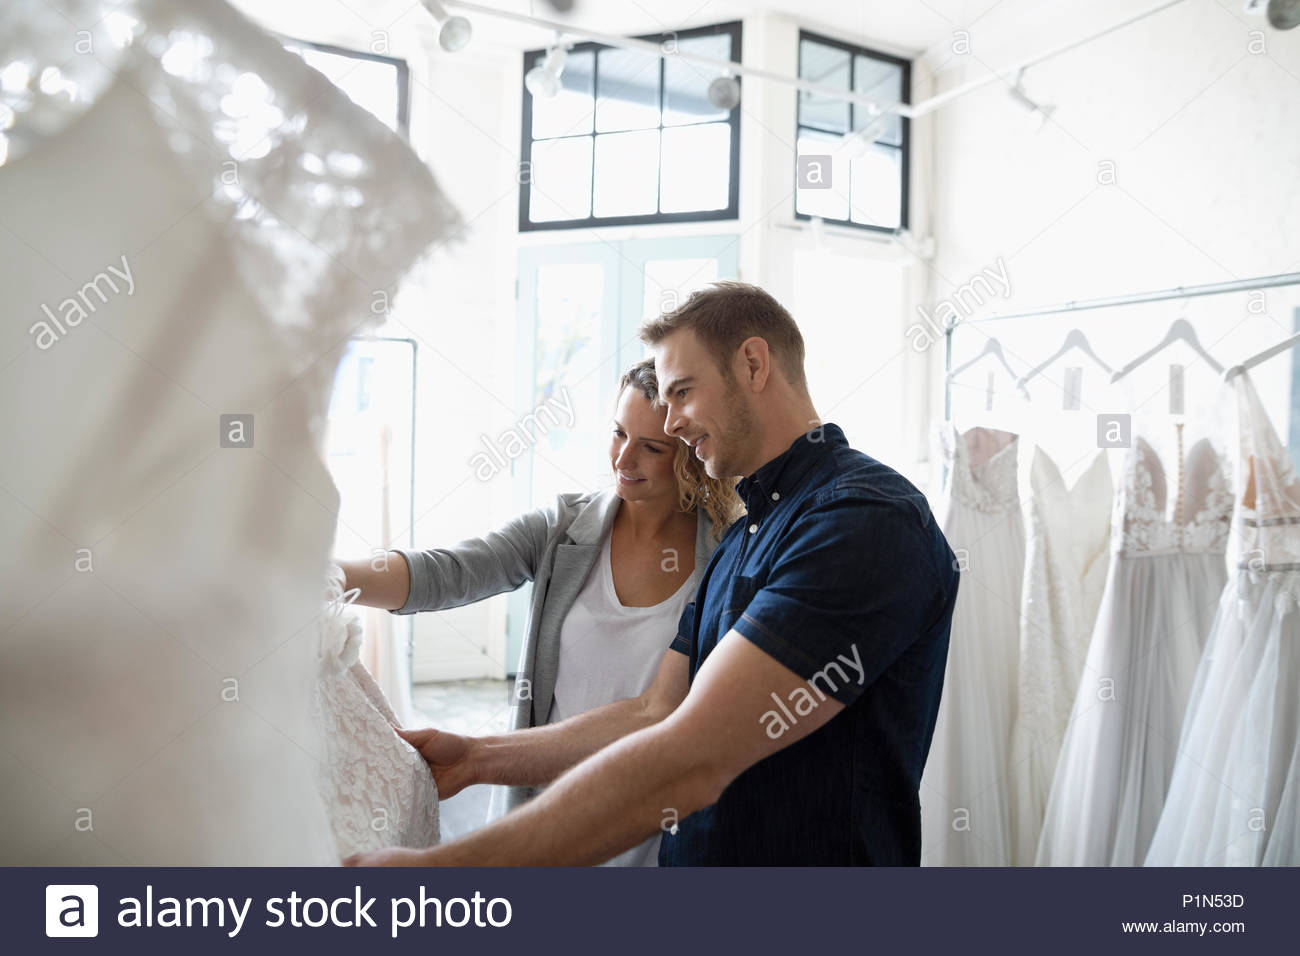 Bride and groom shopping for wedding dresses in bridal boutique Stock Photo